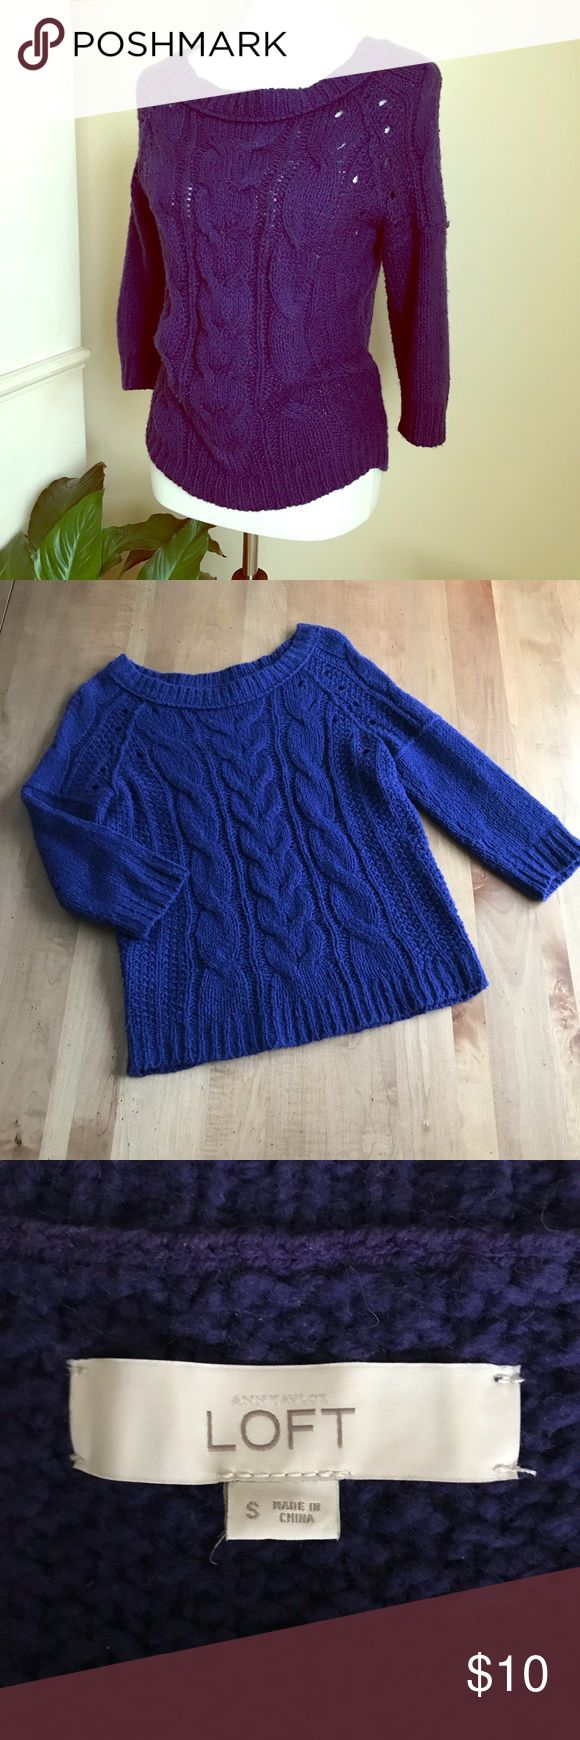 Anne Taylor Loft blue cable knit sweater Anne Taylor Loft super soft cable knit sweater with scoop neck and 3/4 sleeves in a deep blue color. Gently used. LOFT Sweaters Crew & Scoop Necks